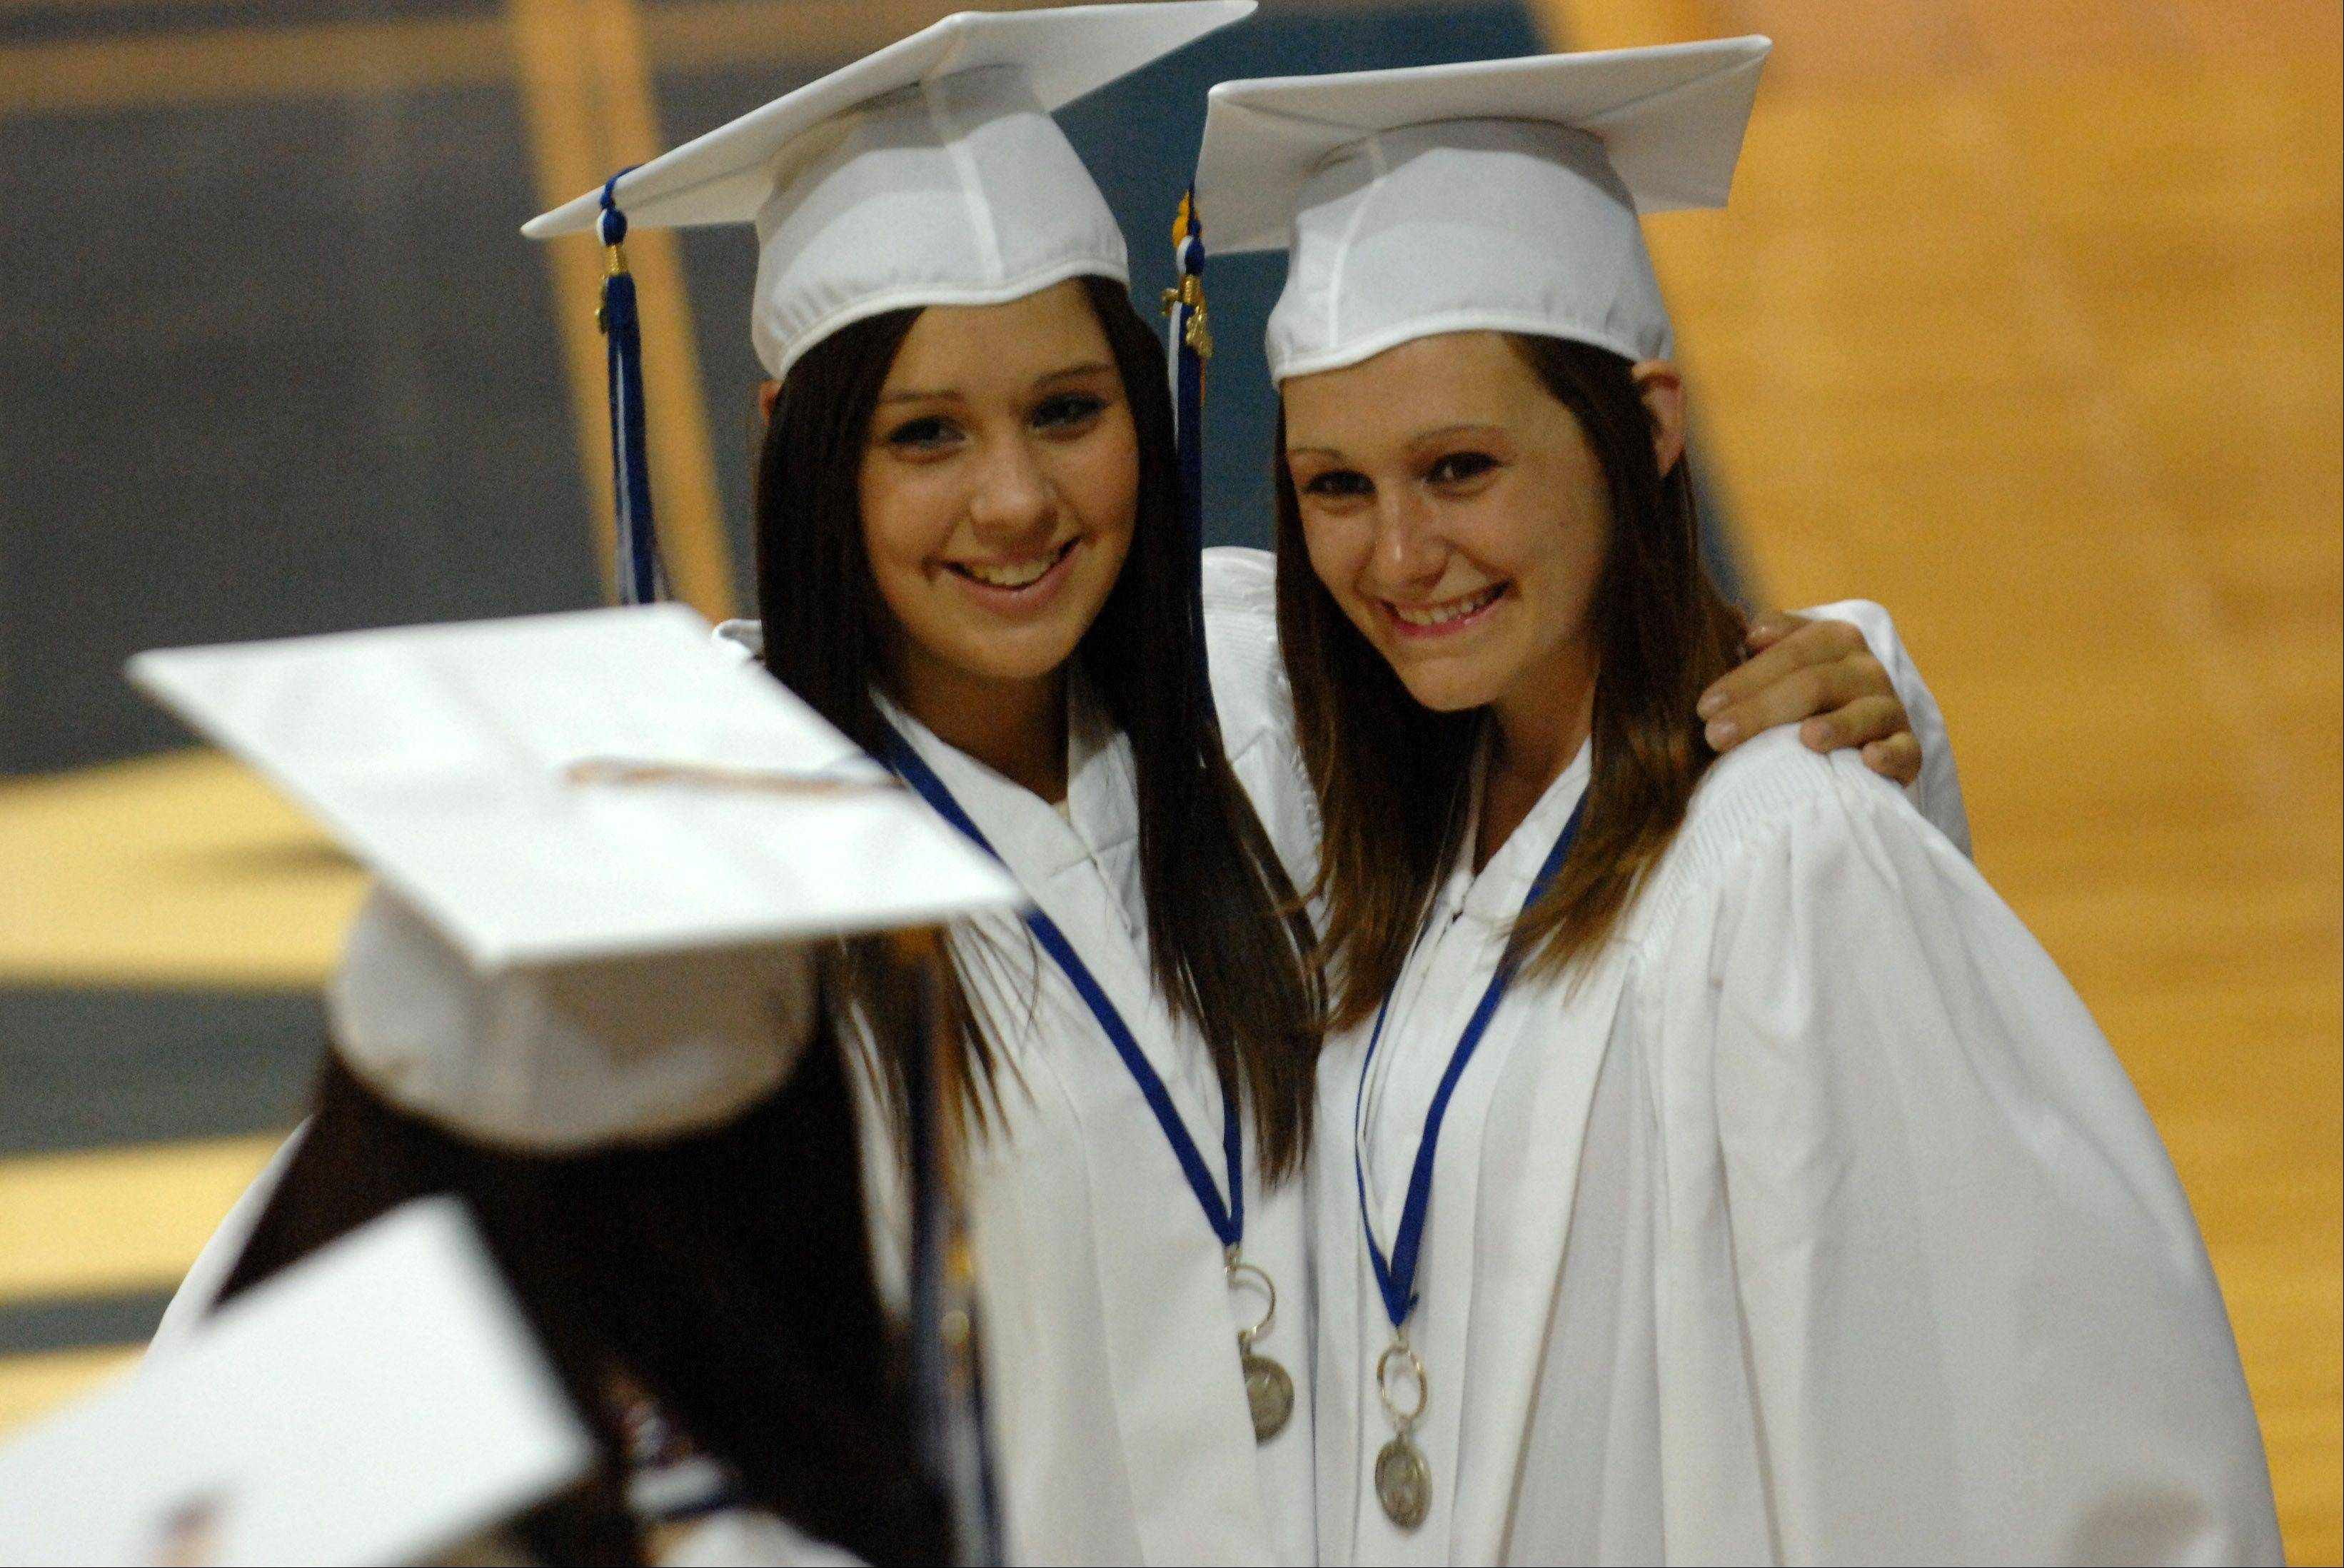 Images from the Geneva High School commencement ceremony Sunday, May 26, 2013 in Geneva.